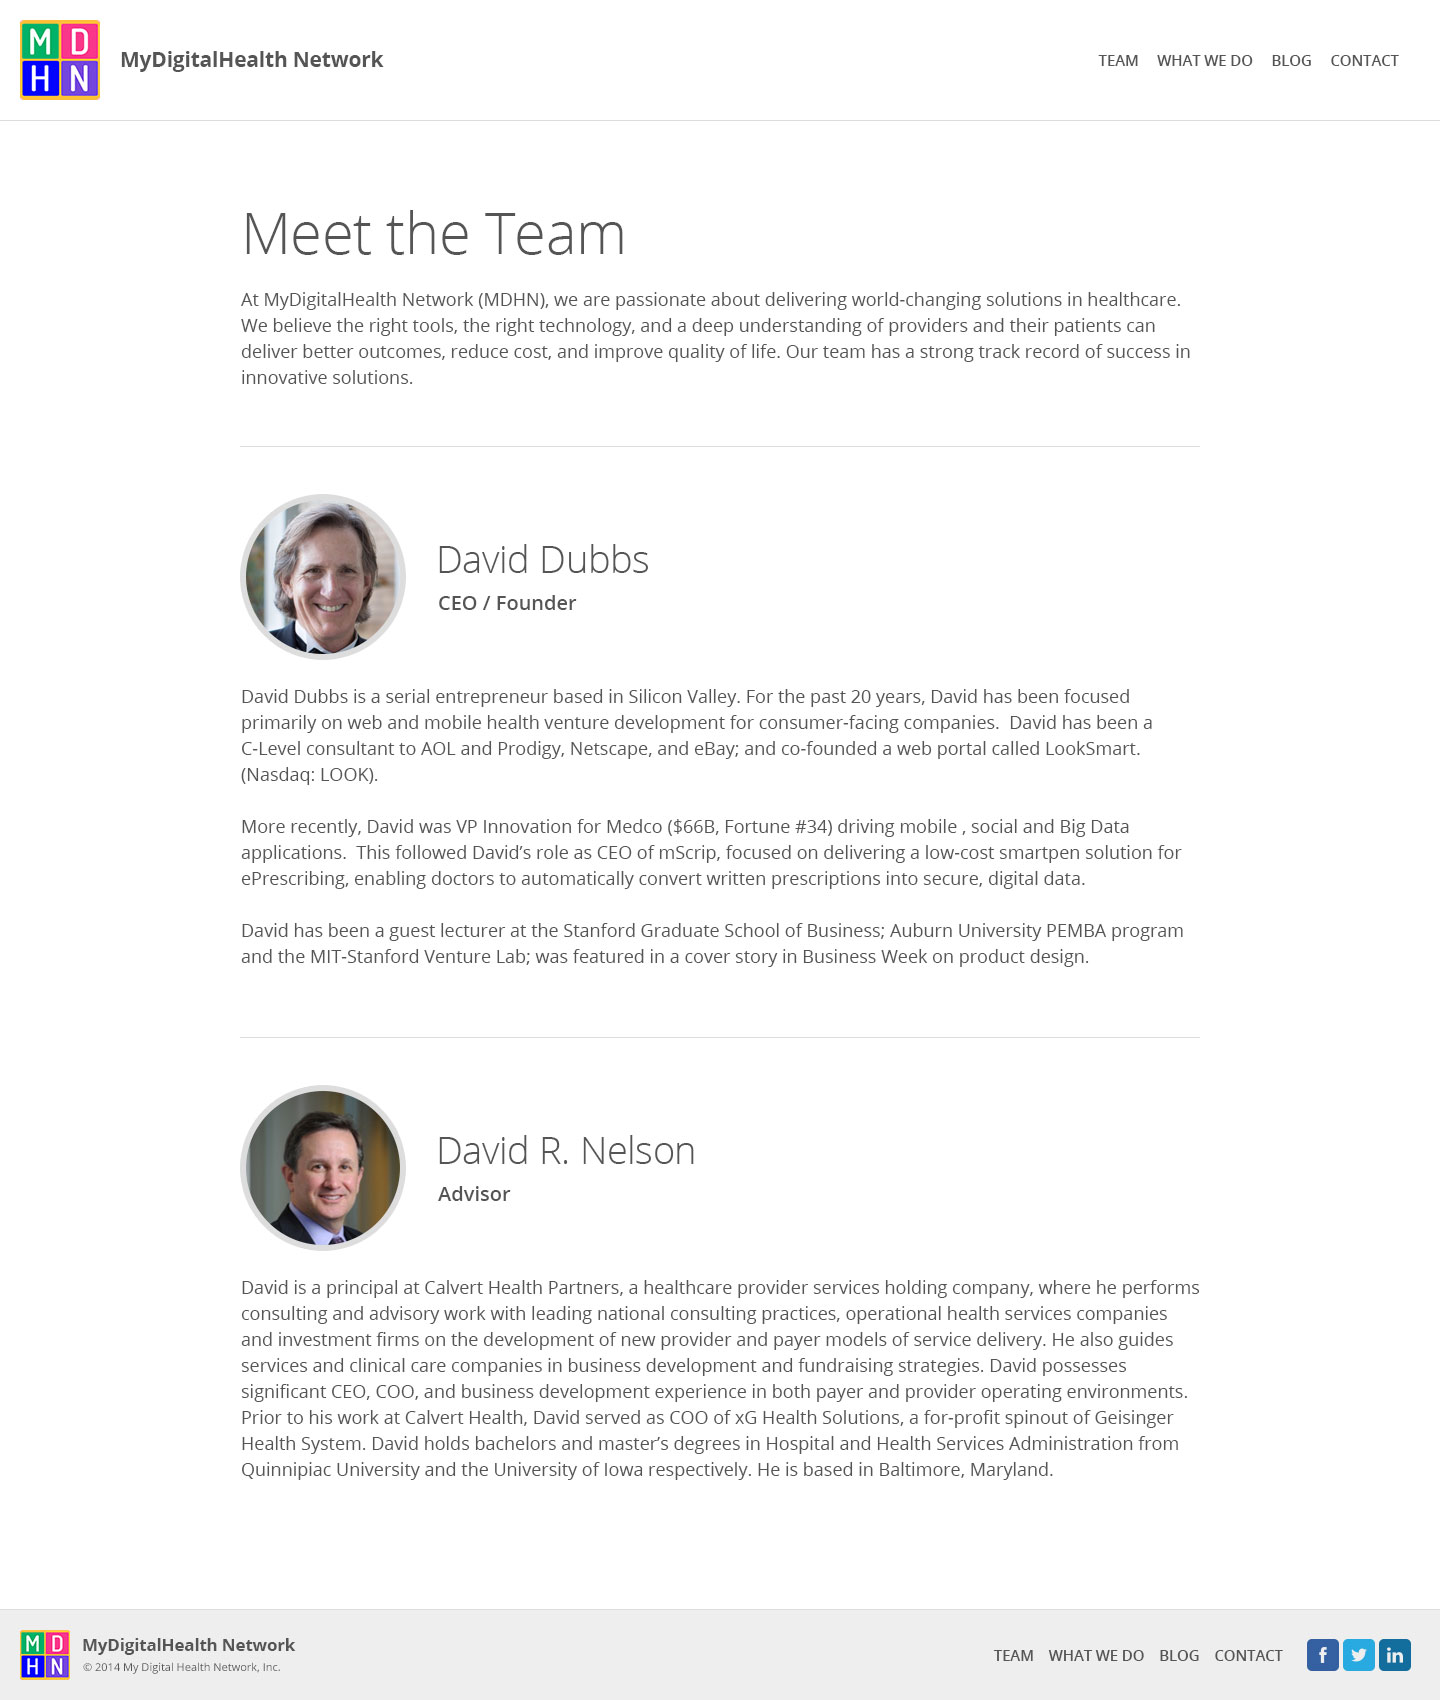 Inside Page - Meet the Team